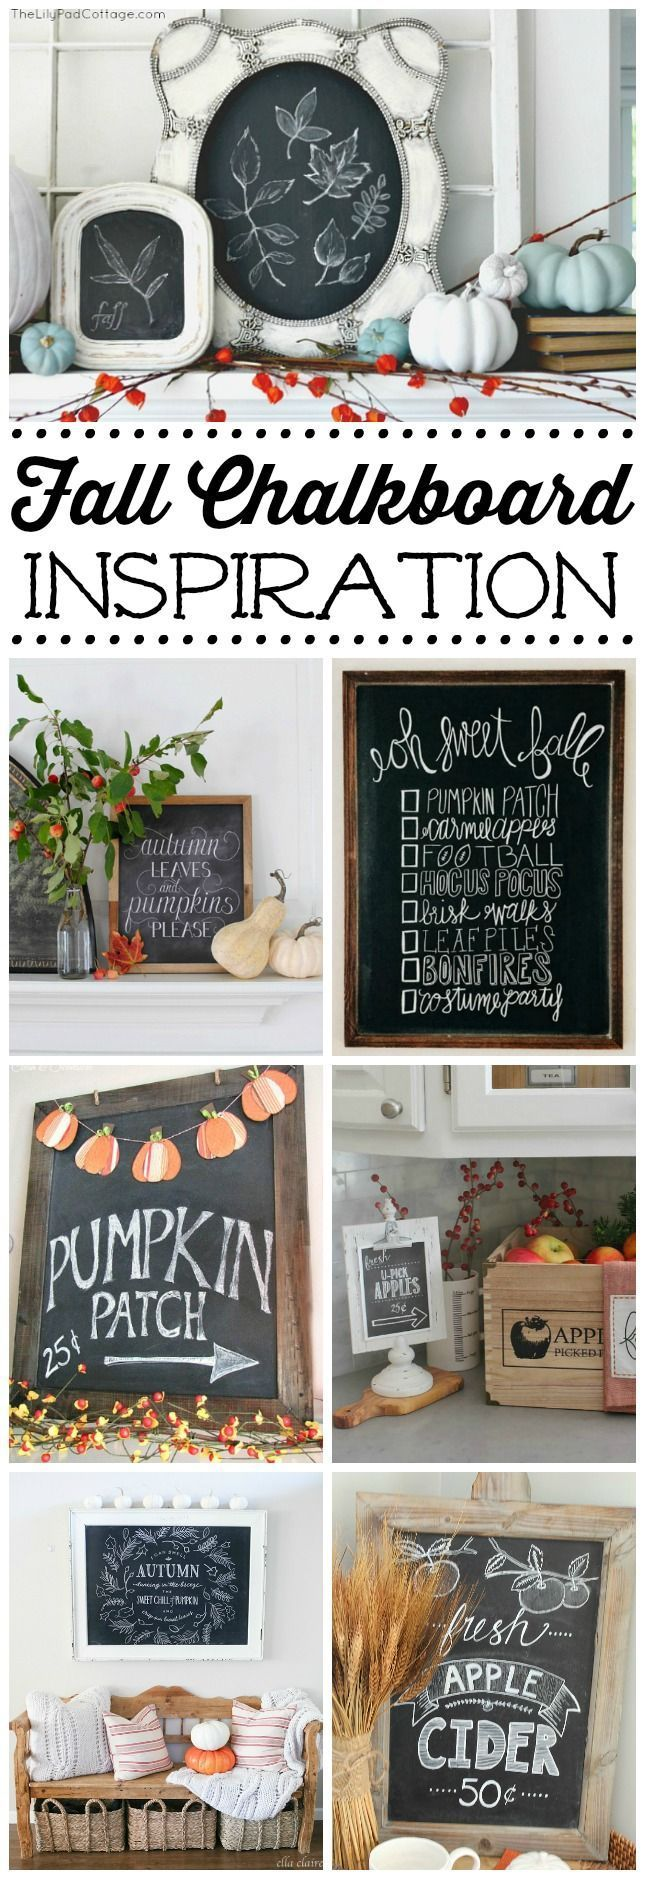 Check out these beautiful fall chalkboard designs and get inspired to create your own chalkboard art. Simple tips and techniques to help get you started!